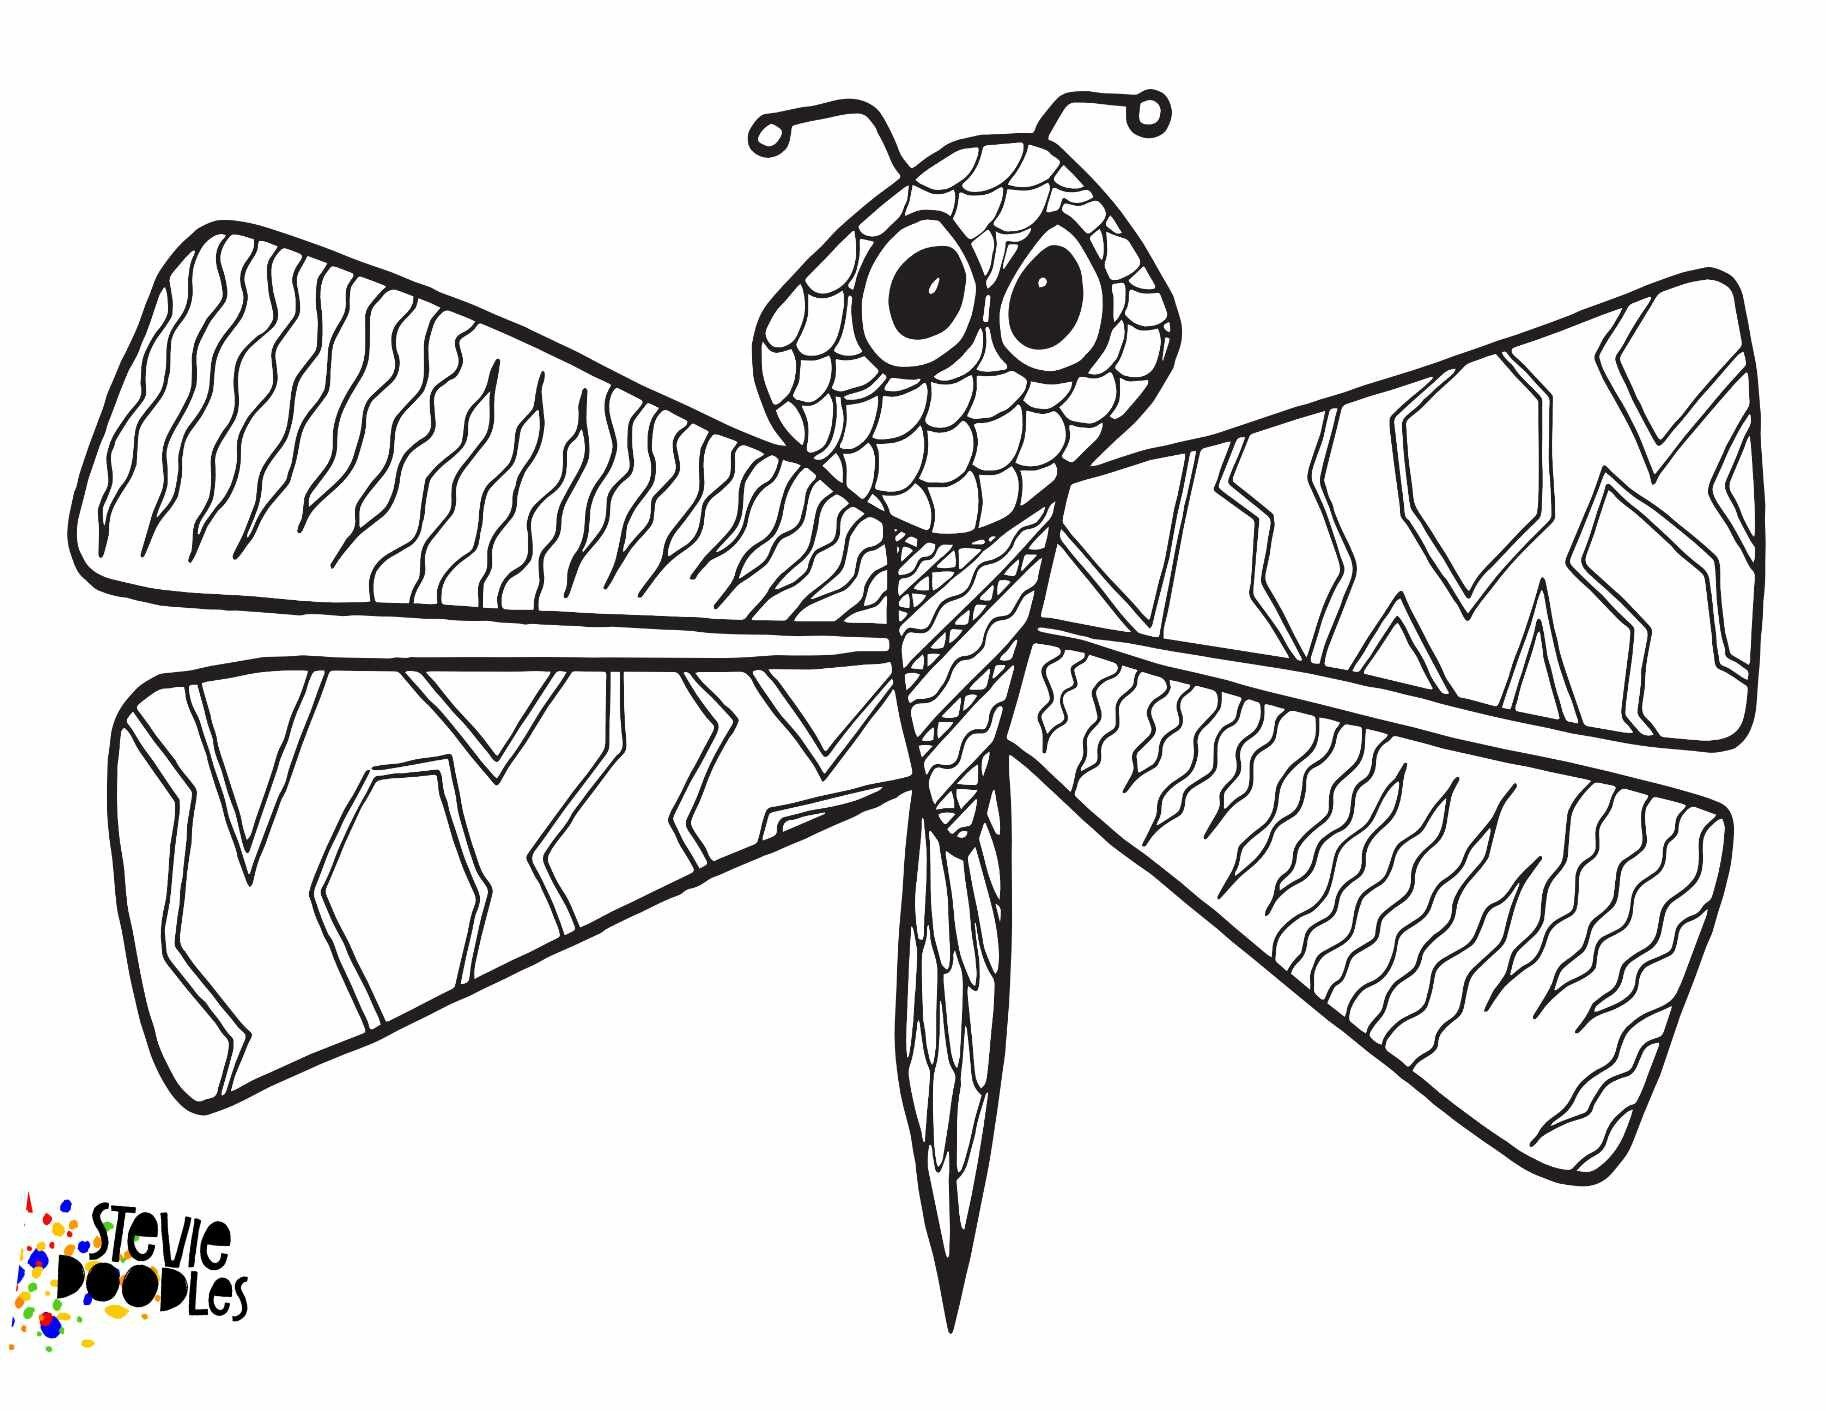 Dragonfly coloring page Royalty Free Vector Image | 1411x1826